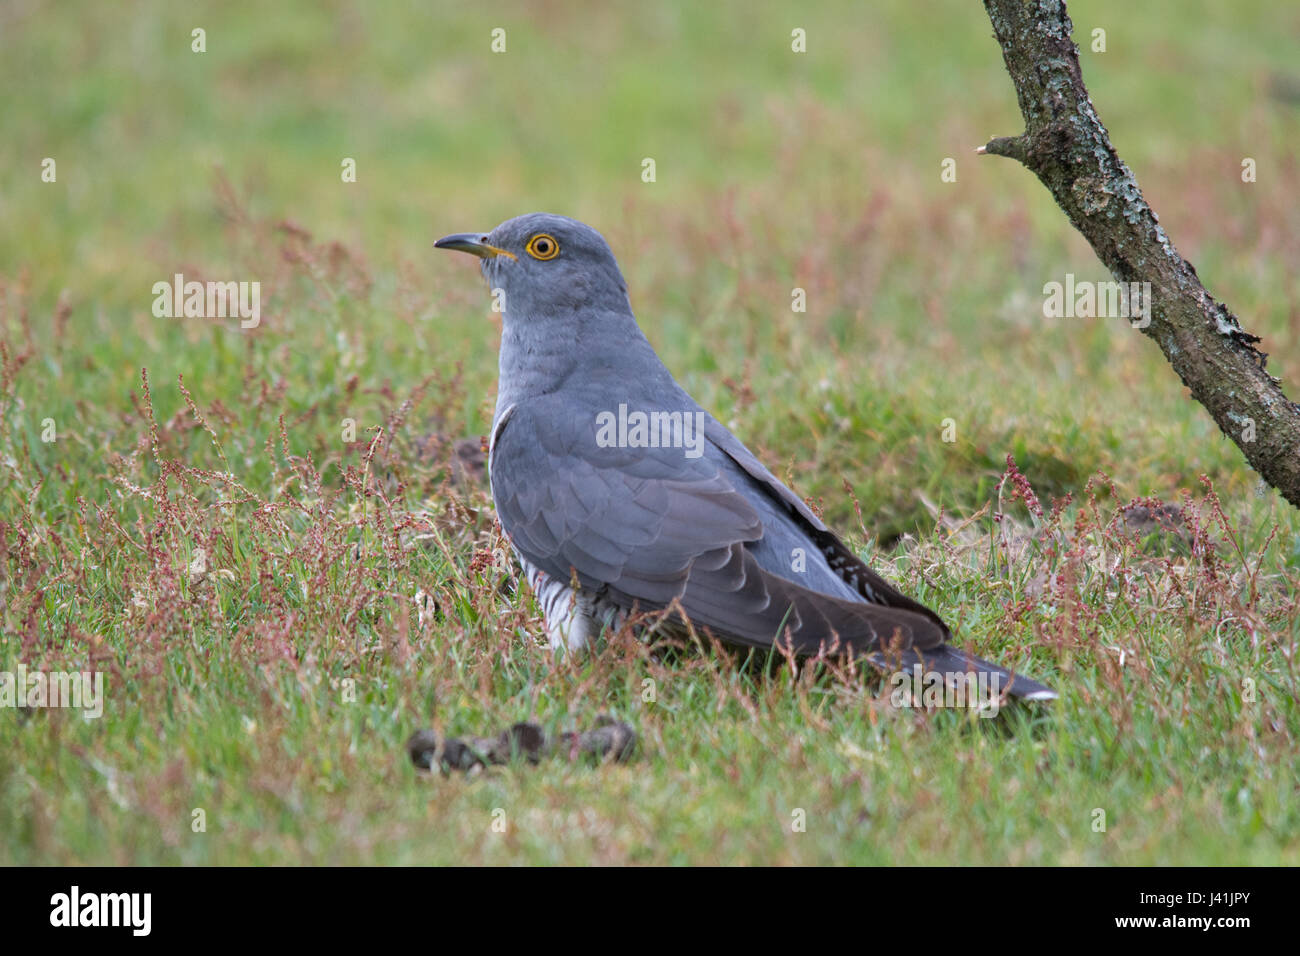 Close-up of cuckoo bird (Cuculus canorus) in Surrey, UK Stock Photo